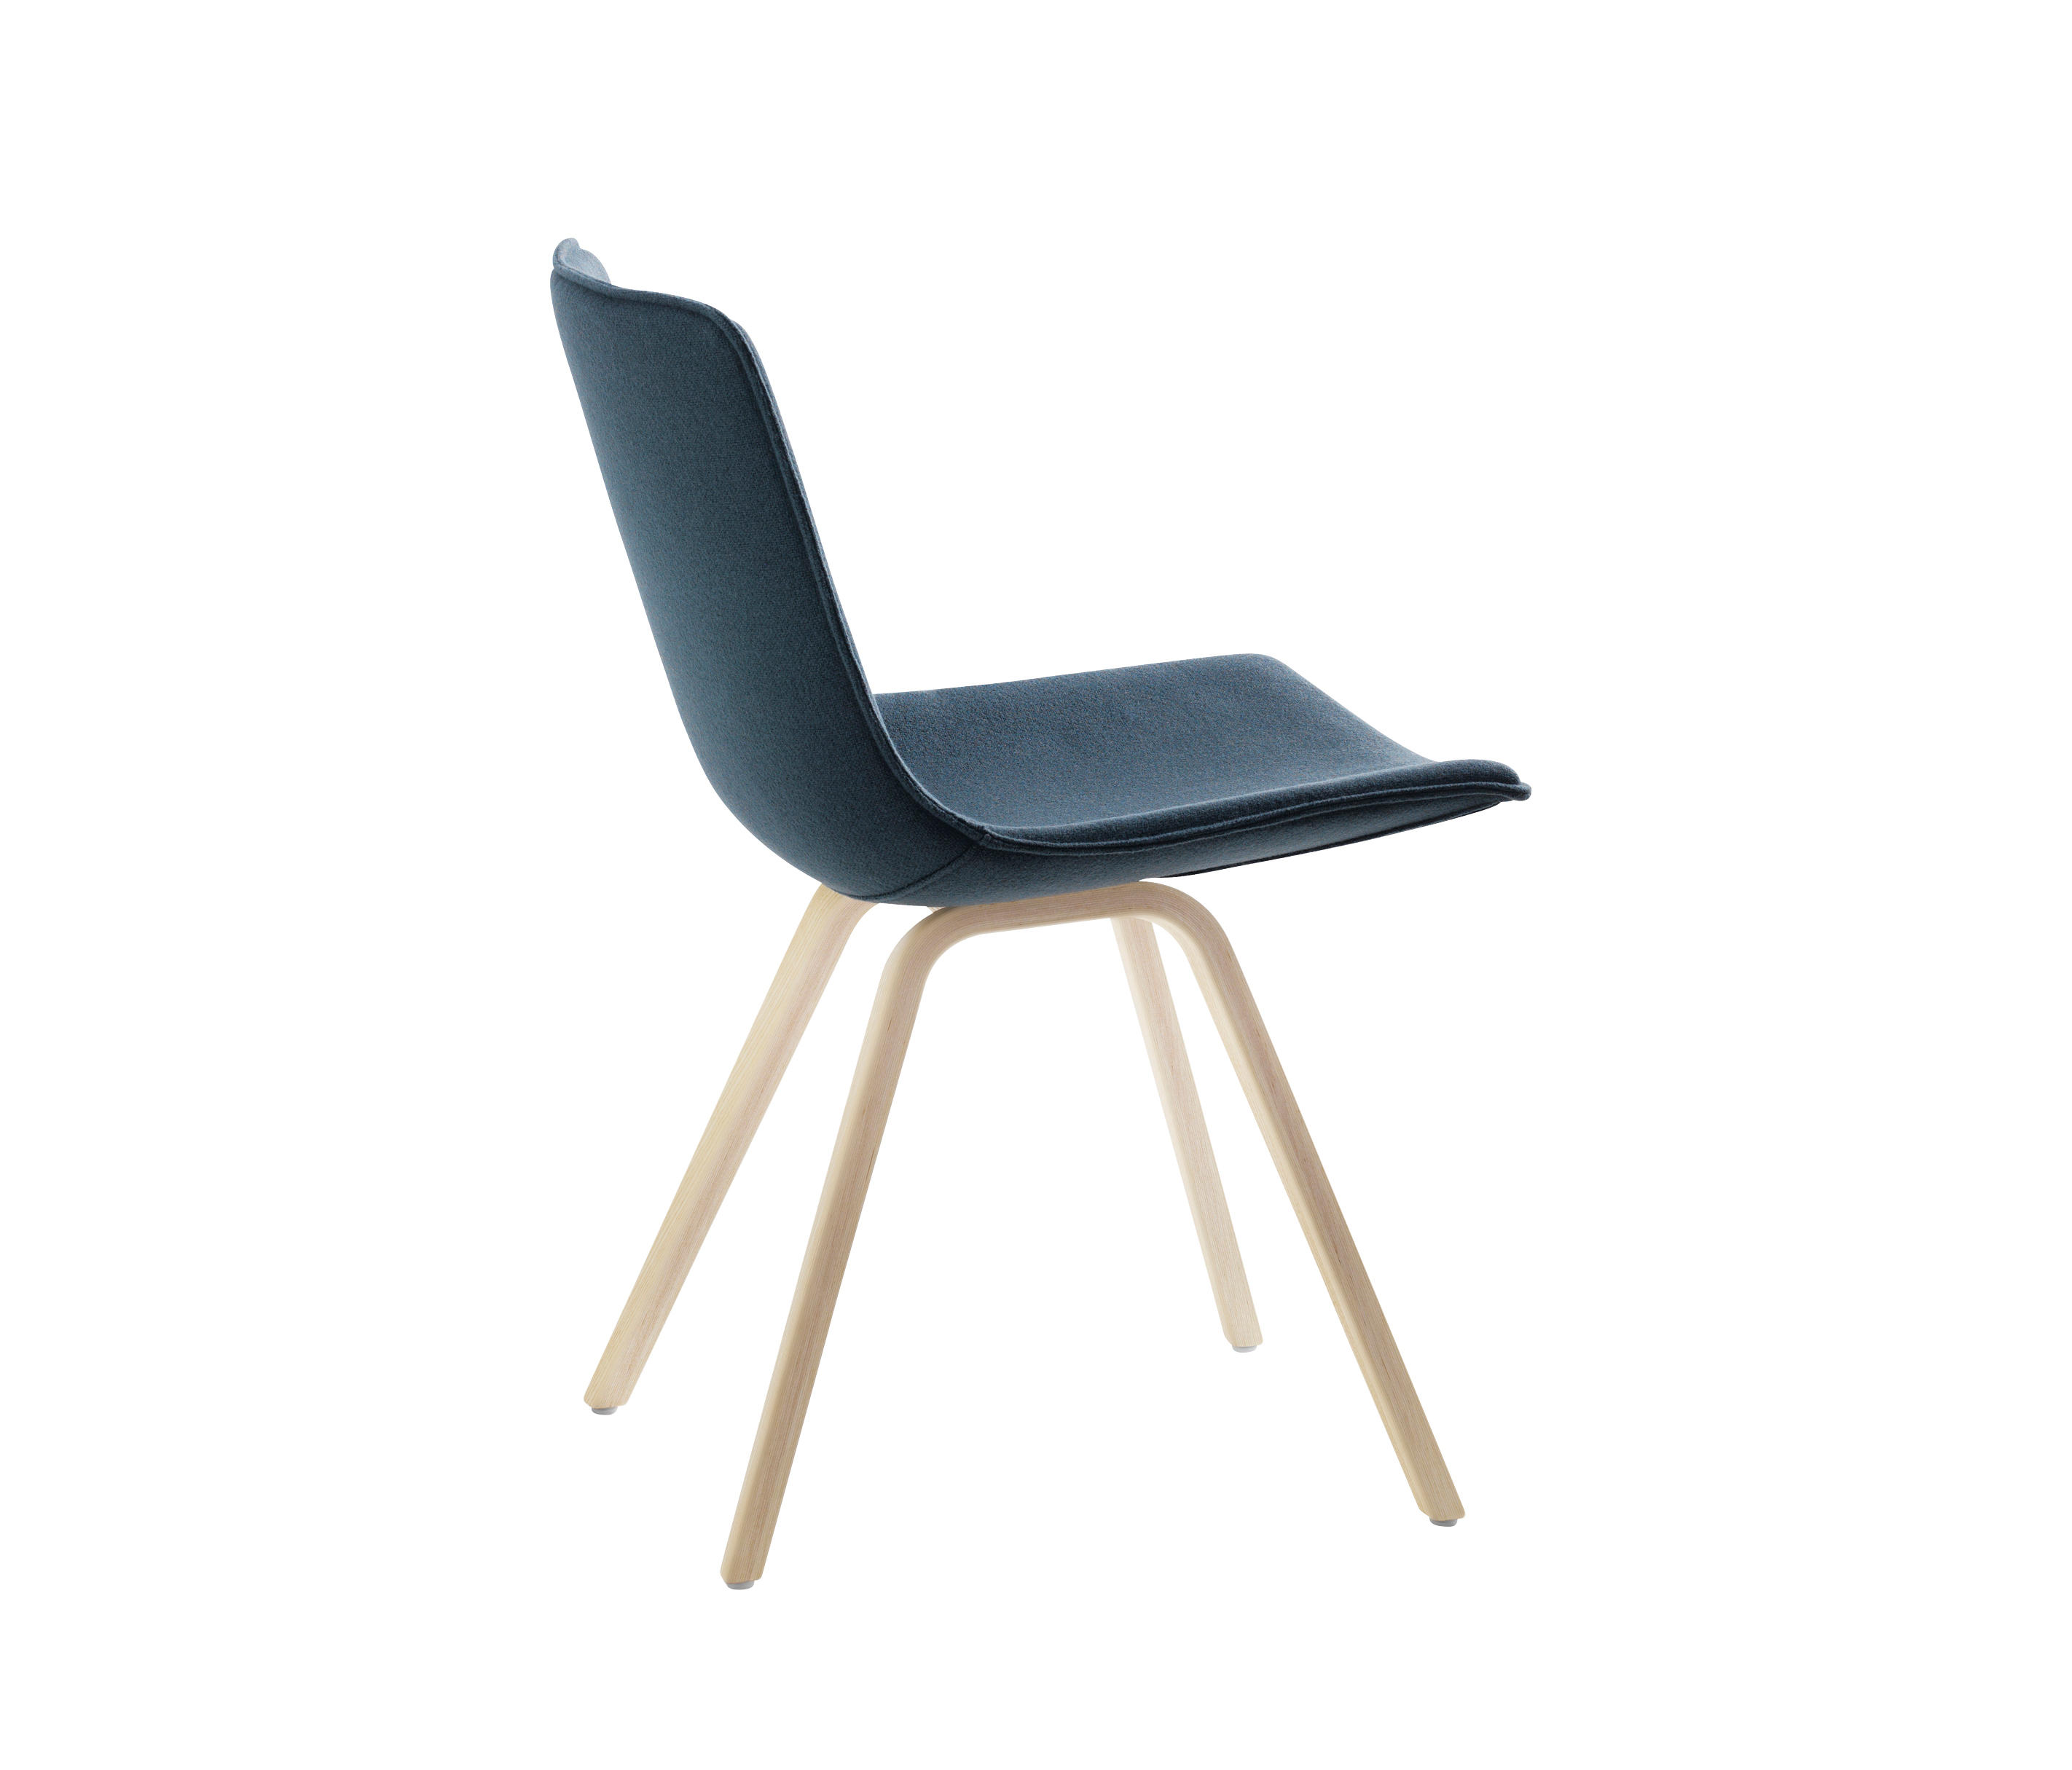 Sedia Bar Sport Comet Sport Chair Chairs From Lammhults Architonic